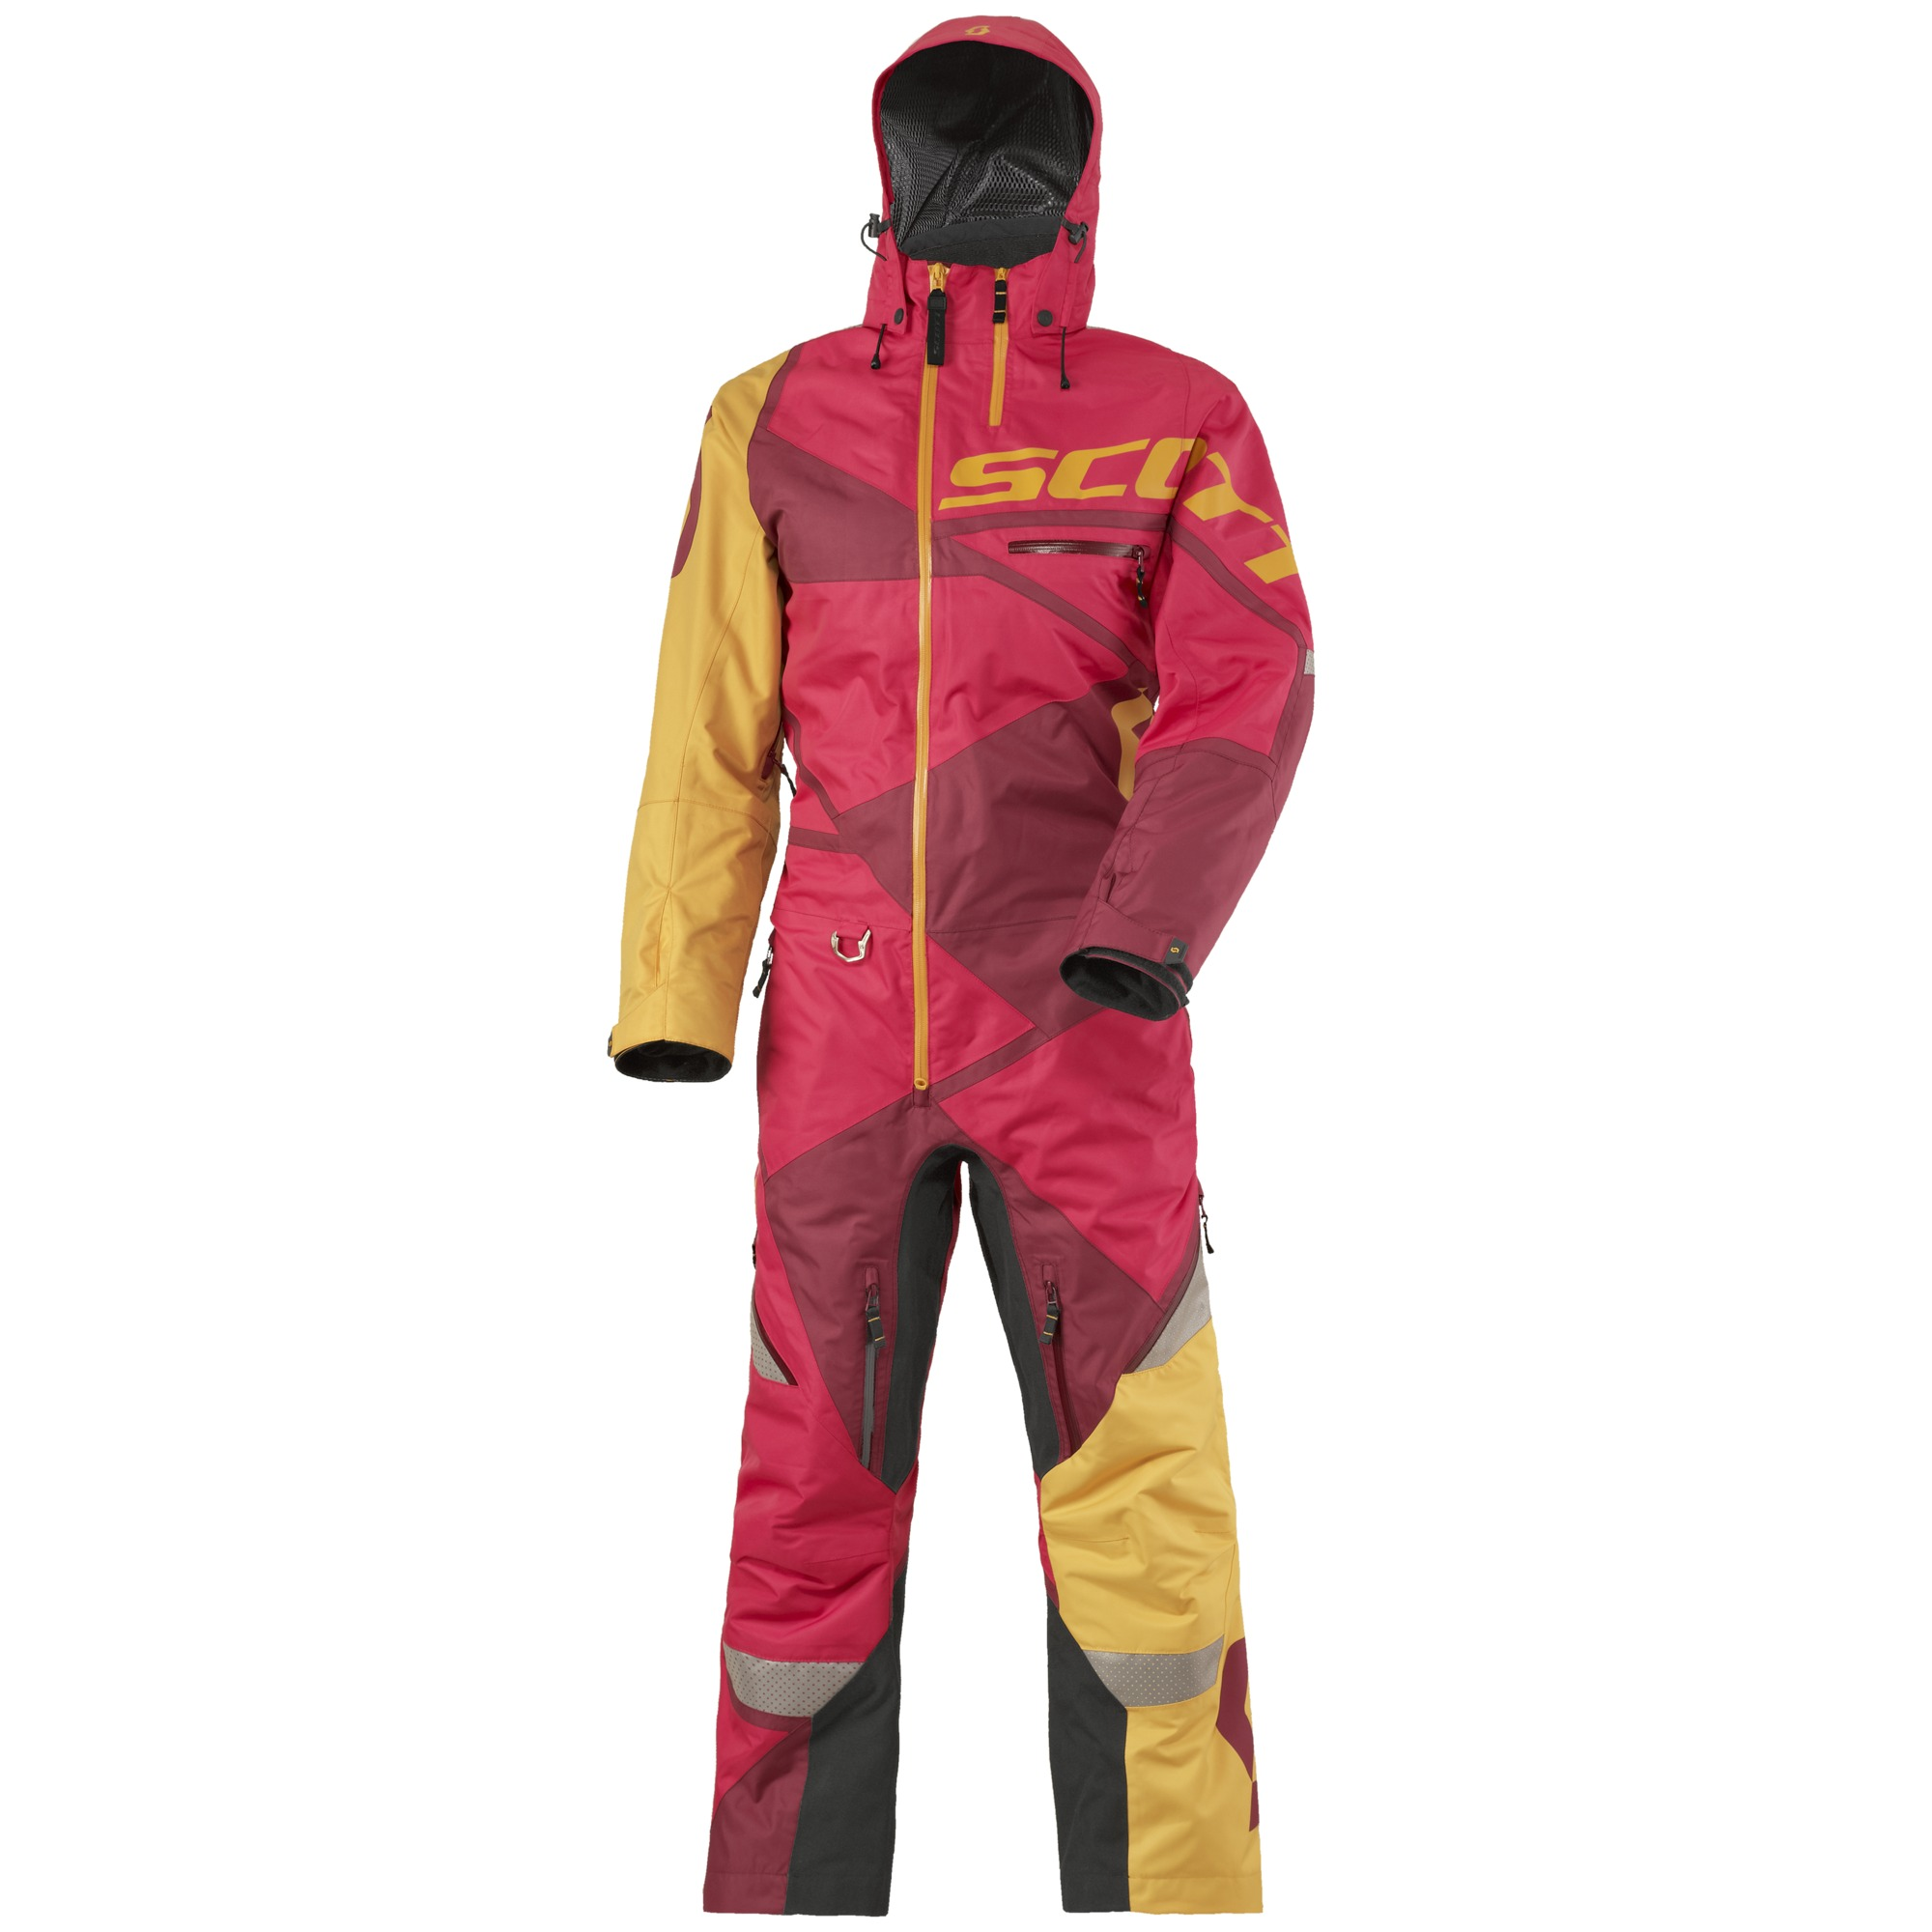 SCOTT X One Pro Women's Monosuit